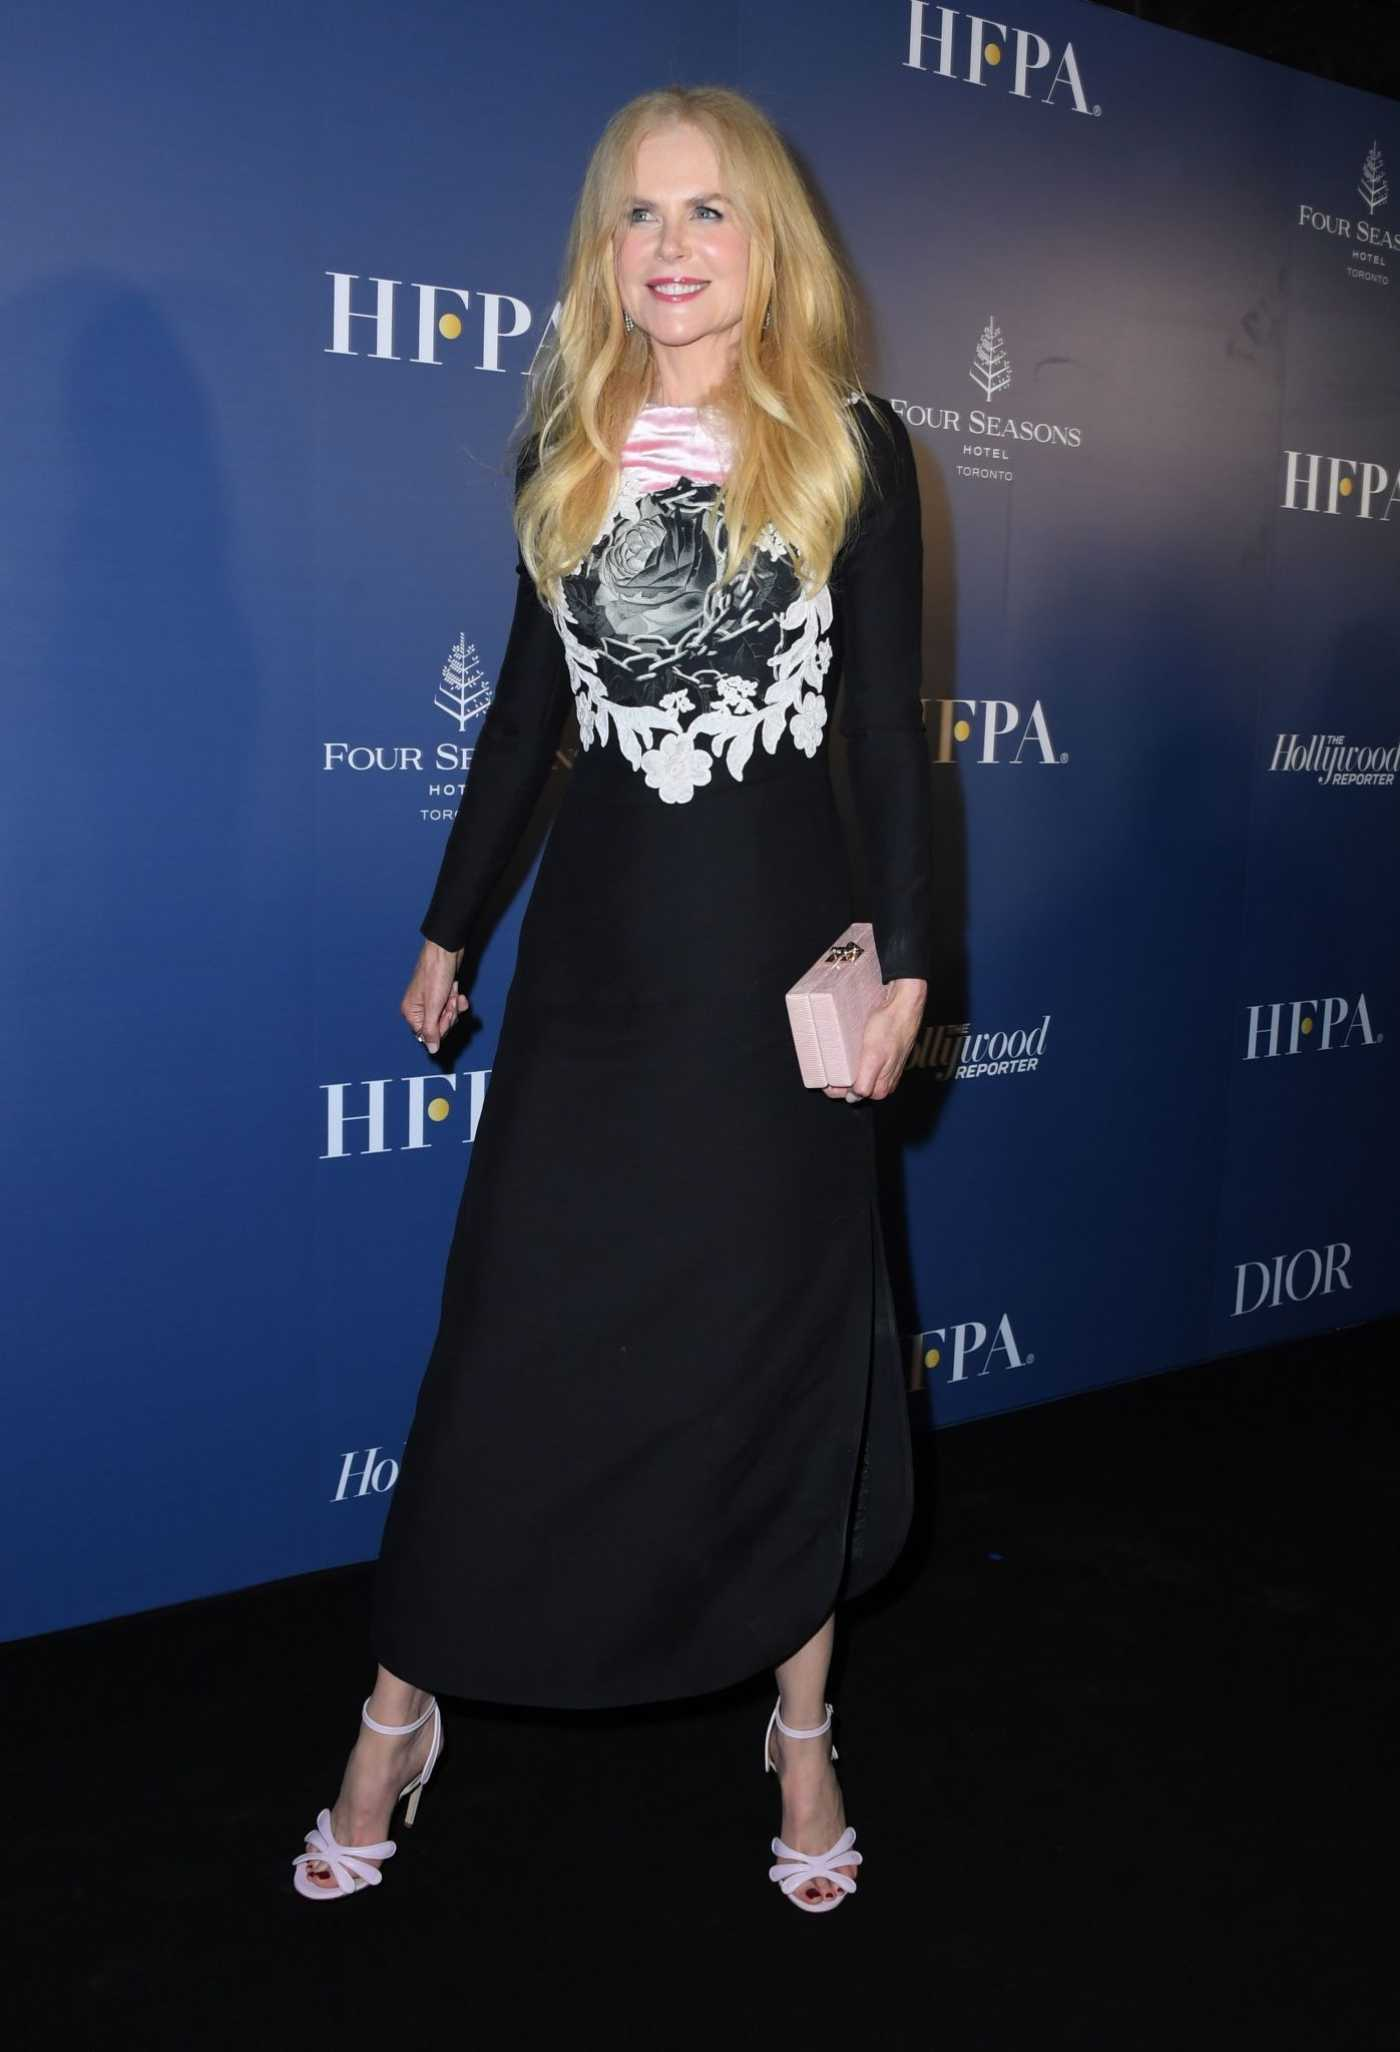 Nicole Kidman Attends the HFPA/THR TIFF PARTY During 2019 Toronto International Film Festival in Toronto 09/07/2019